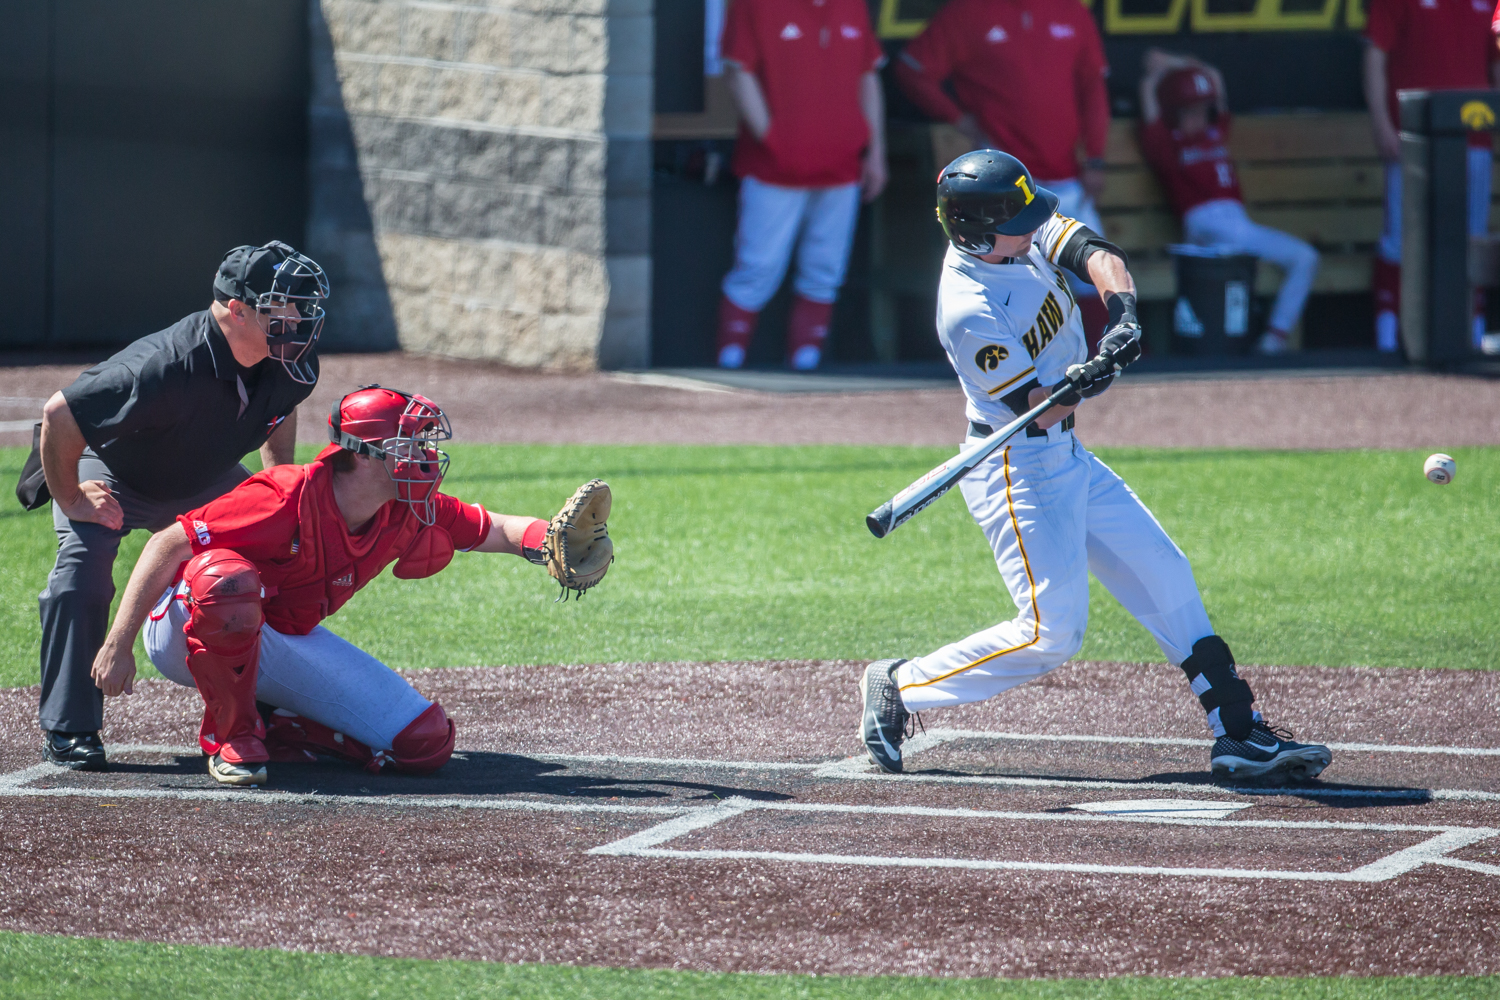 Iowa infielder Chris Whelan swings while at-bat during a baseball game between Iowa and Nebraska at Duane Banks Field on Saturday, April 20, 2019. The Hawkeyes defeated the Cornhuskers, 17-9.